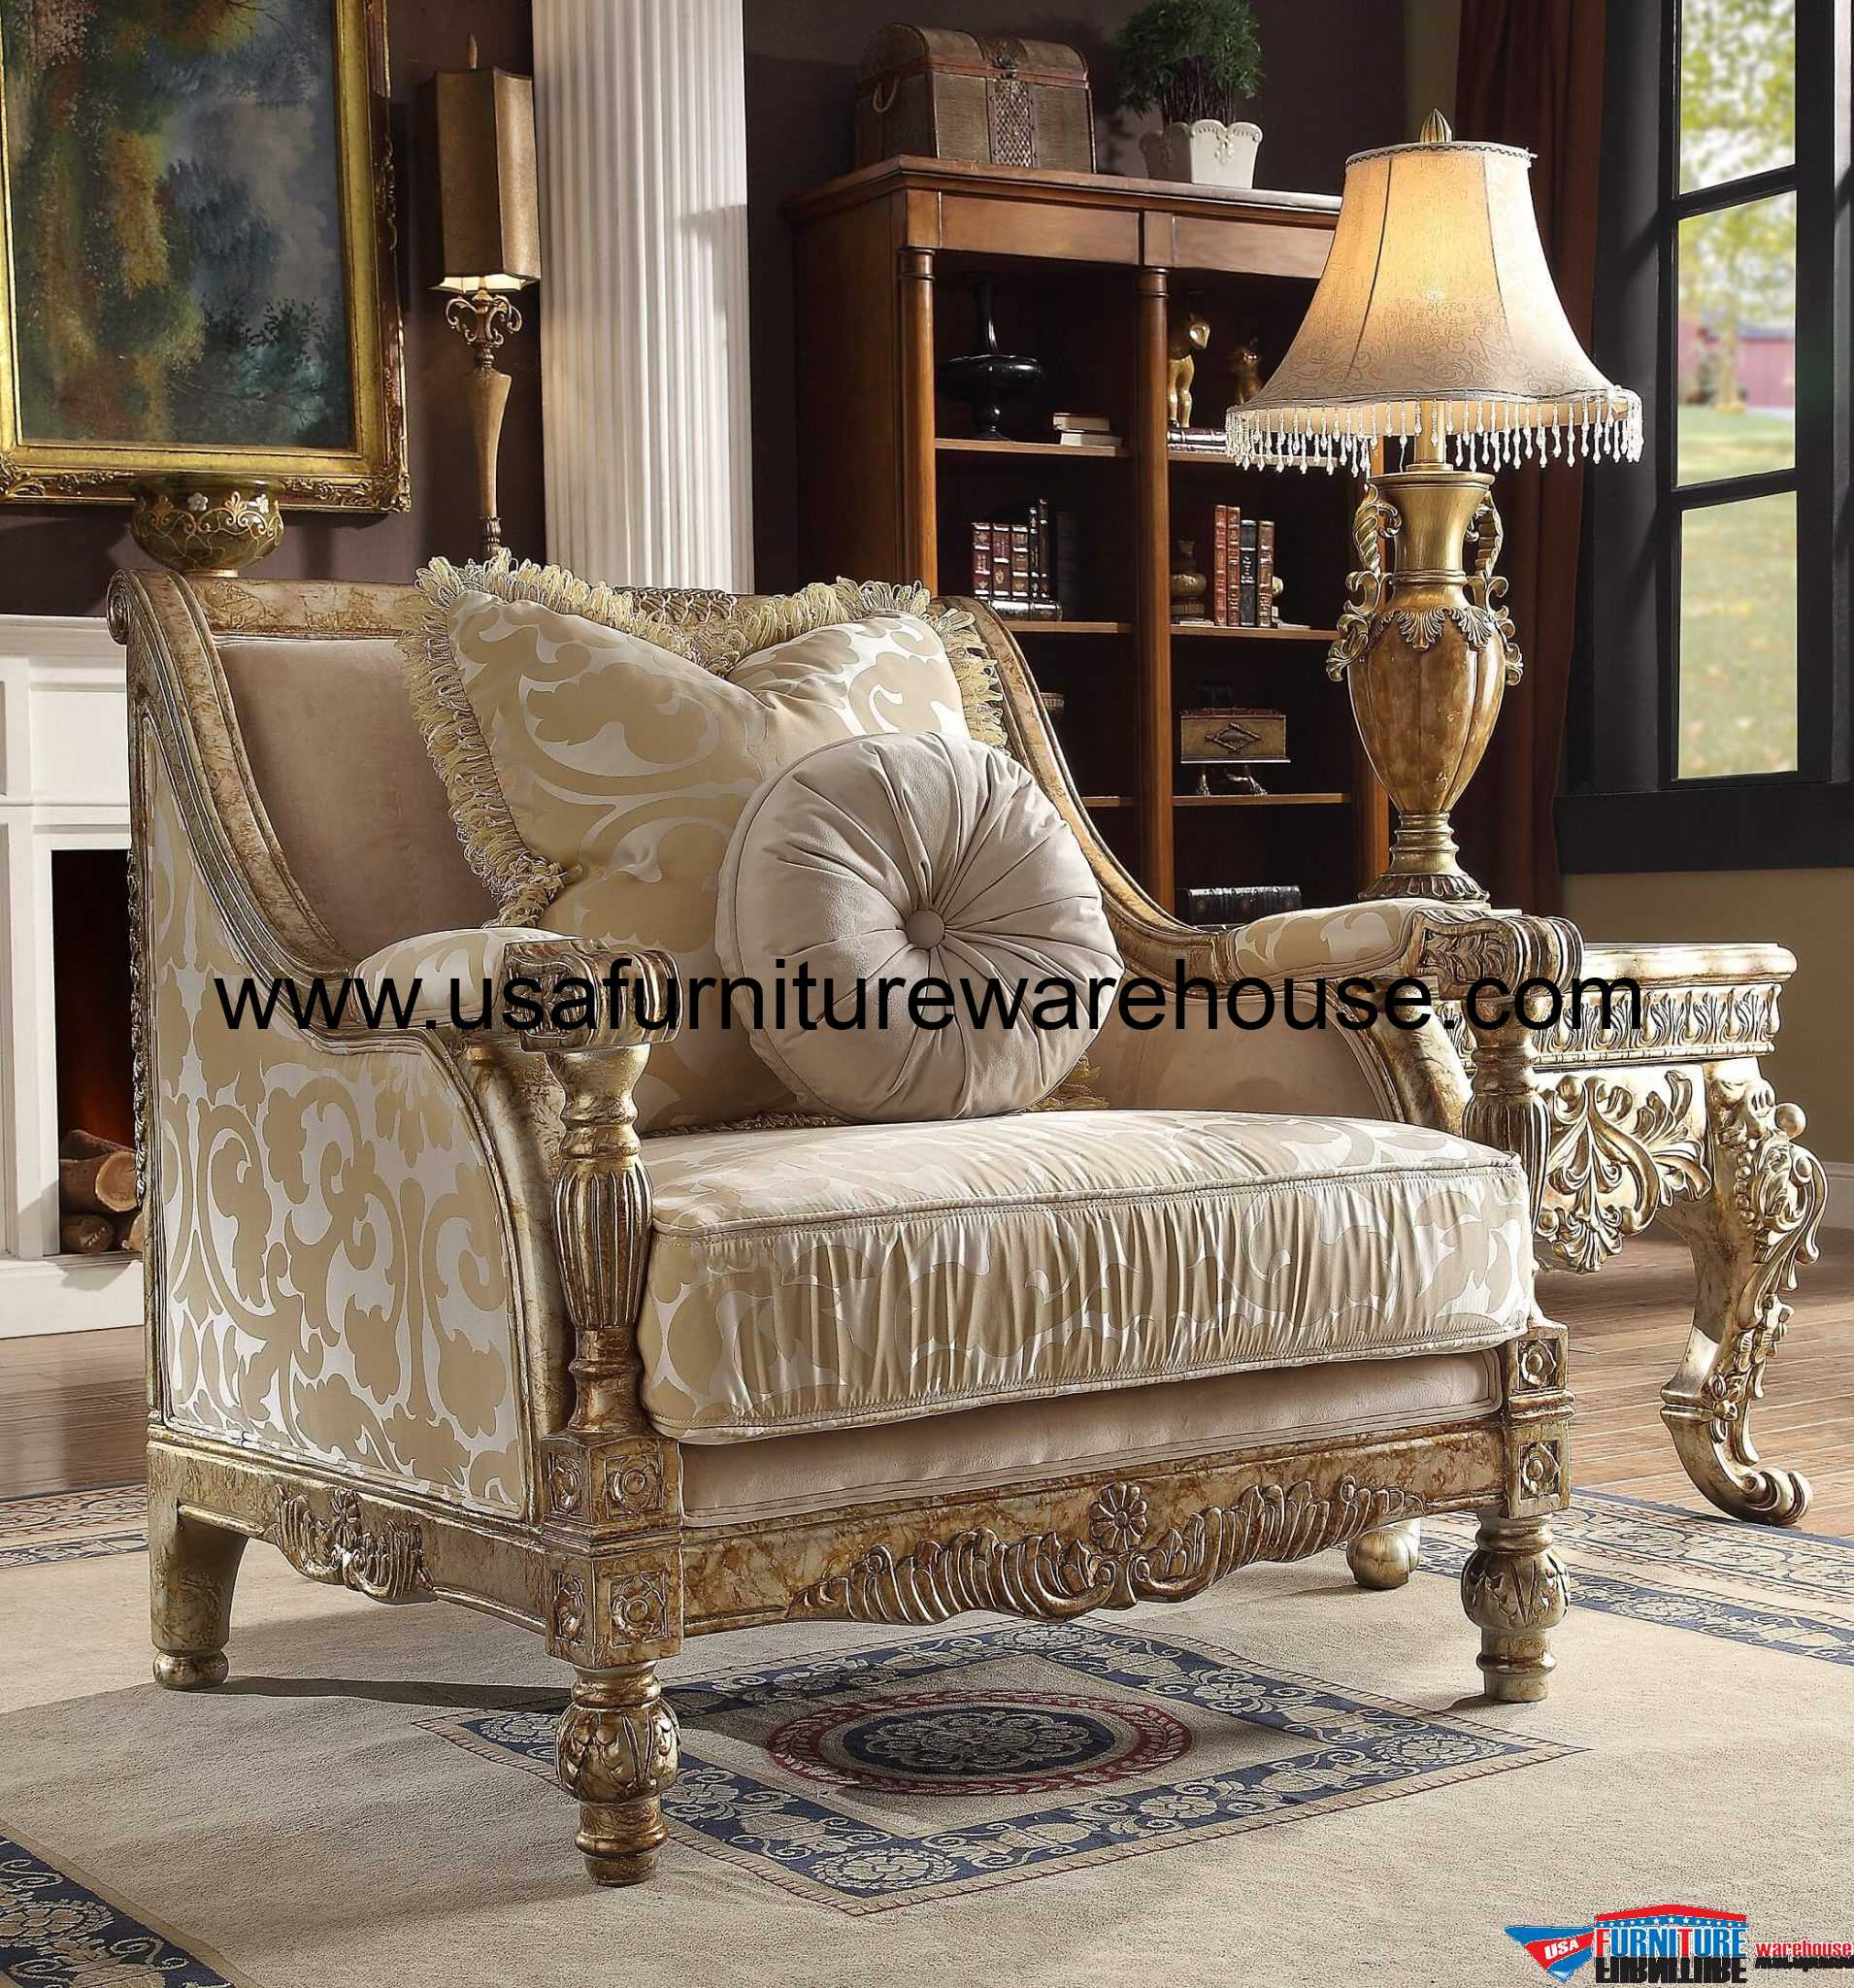 chair design gold best office for back support 2018 homey hd 205 wood trim antique